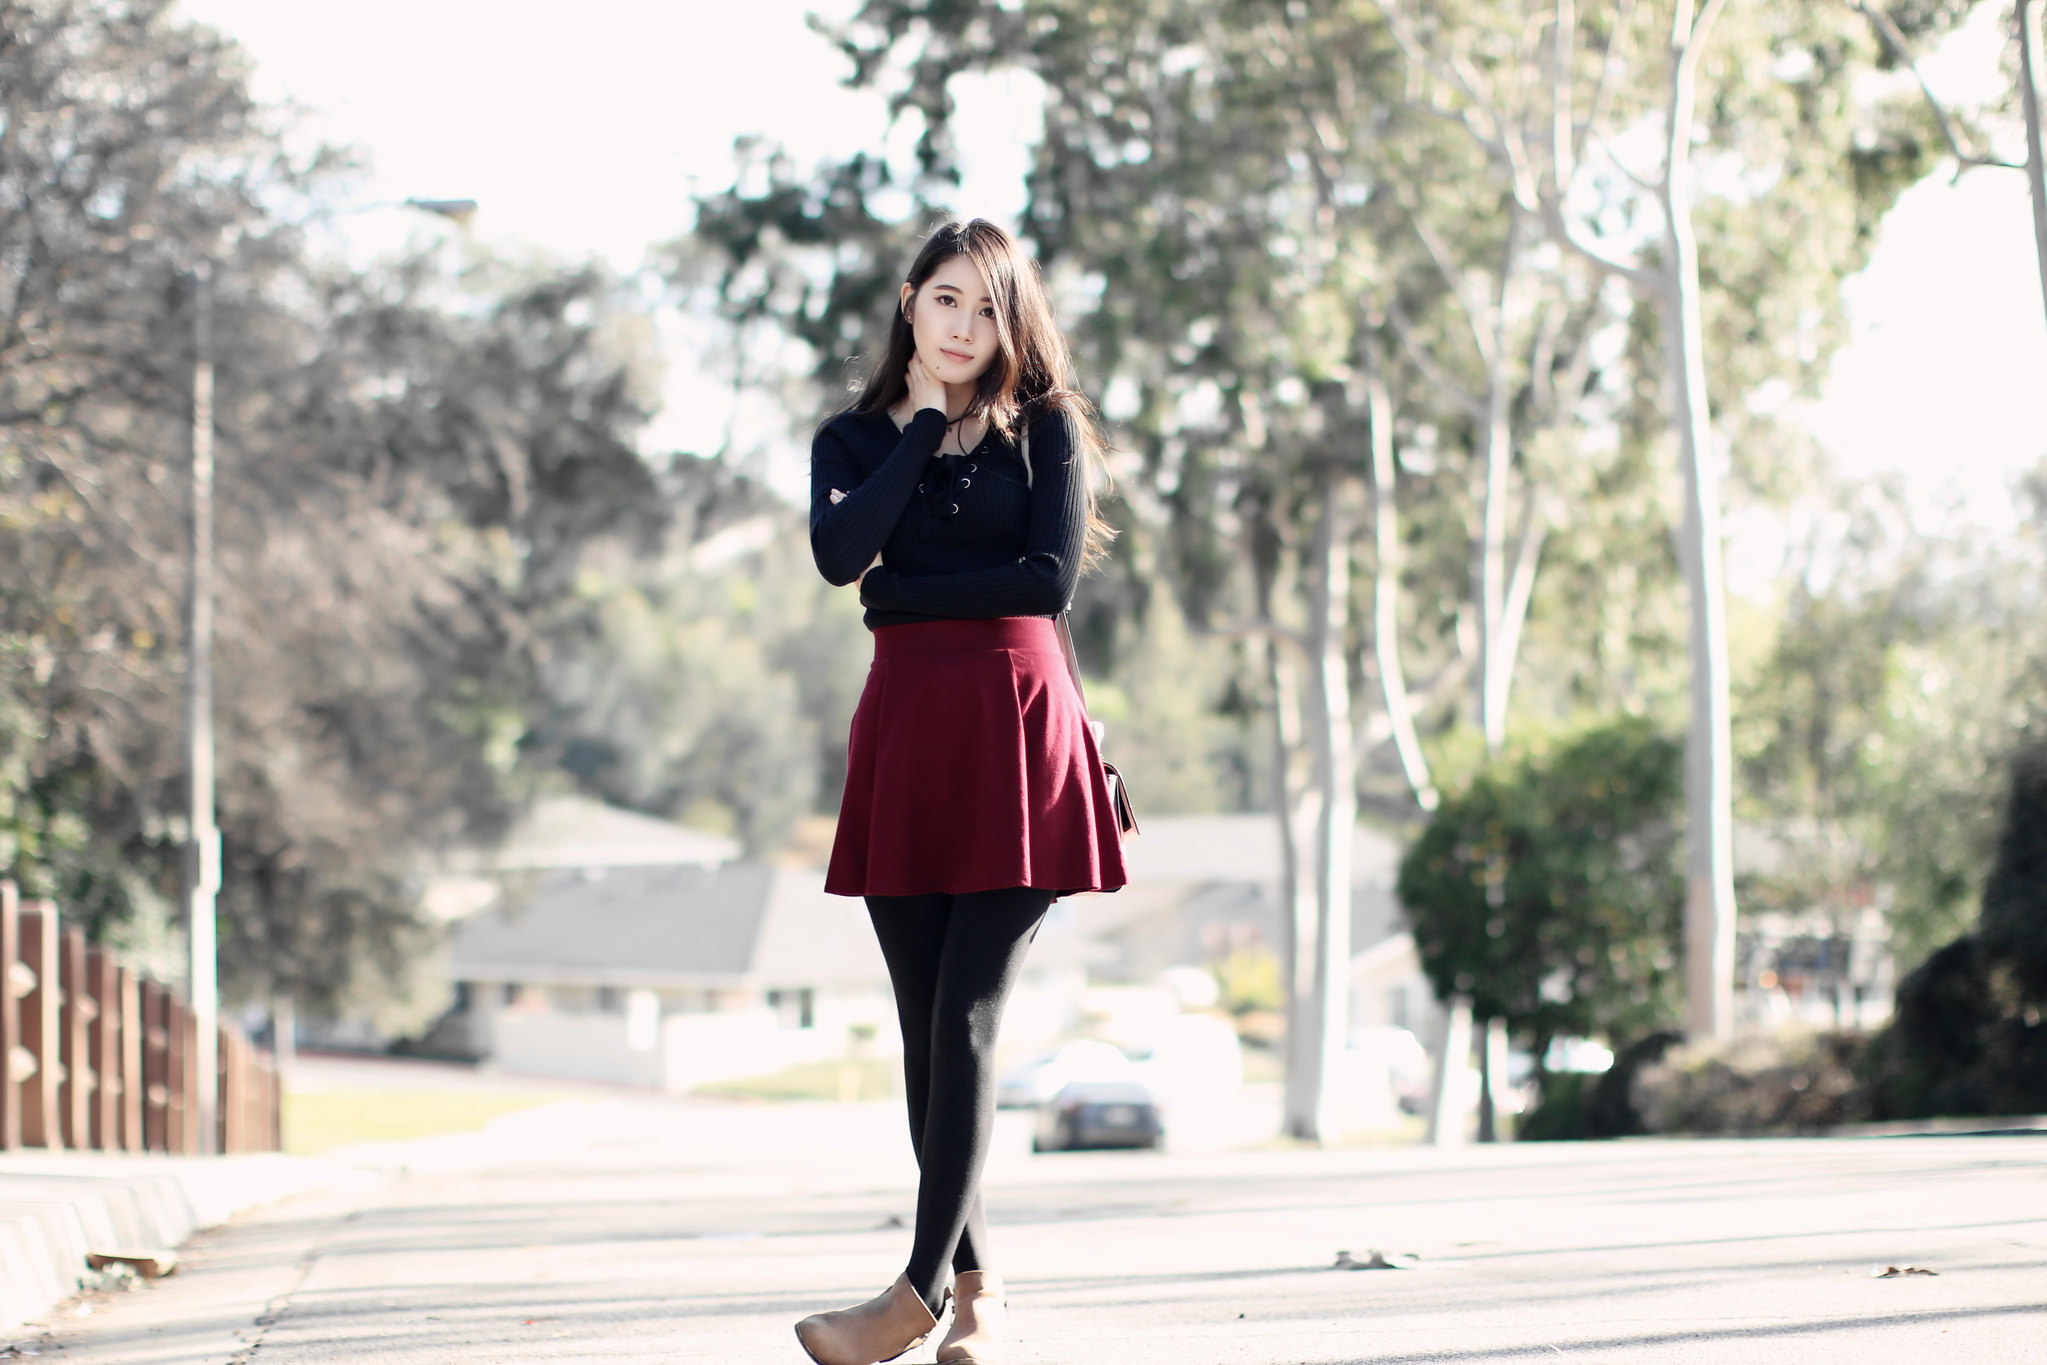 2390-ootd-fashion-style-wiwt-clothestoyouuu-elizabeeetht-preppy-f21-hollister-winterfashion-springfashion